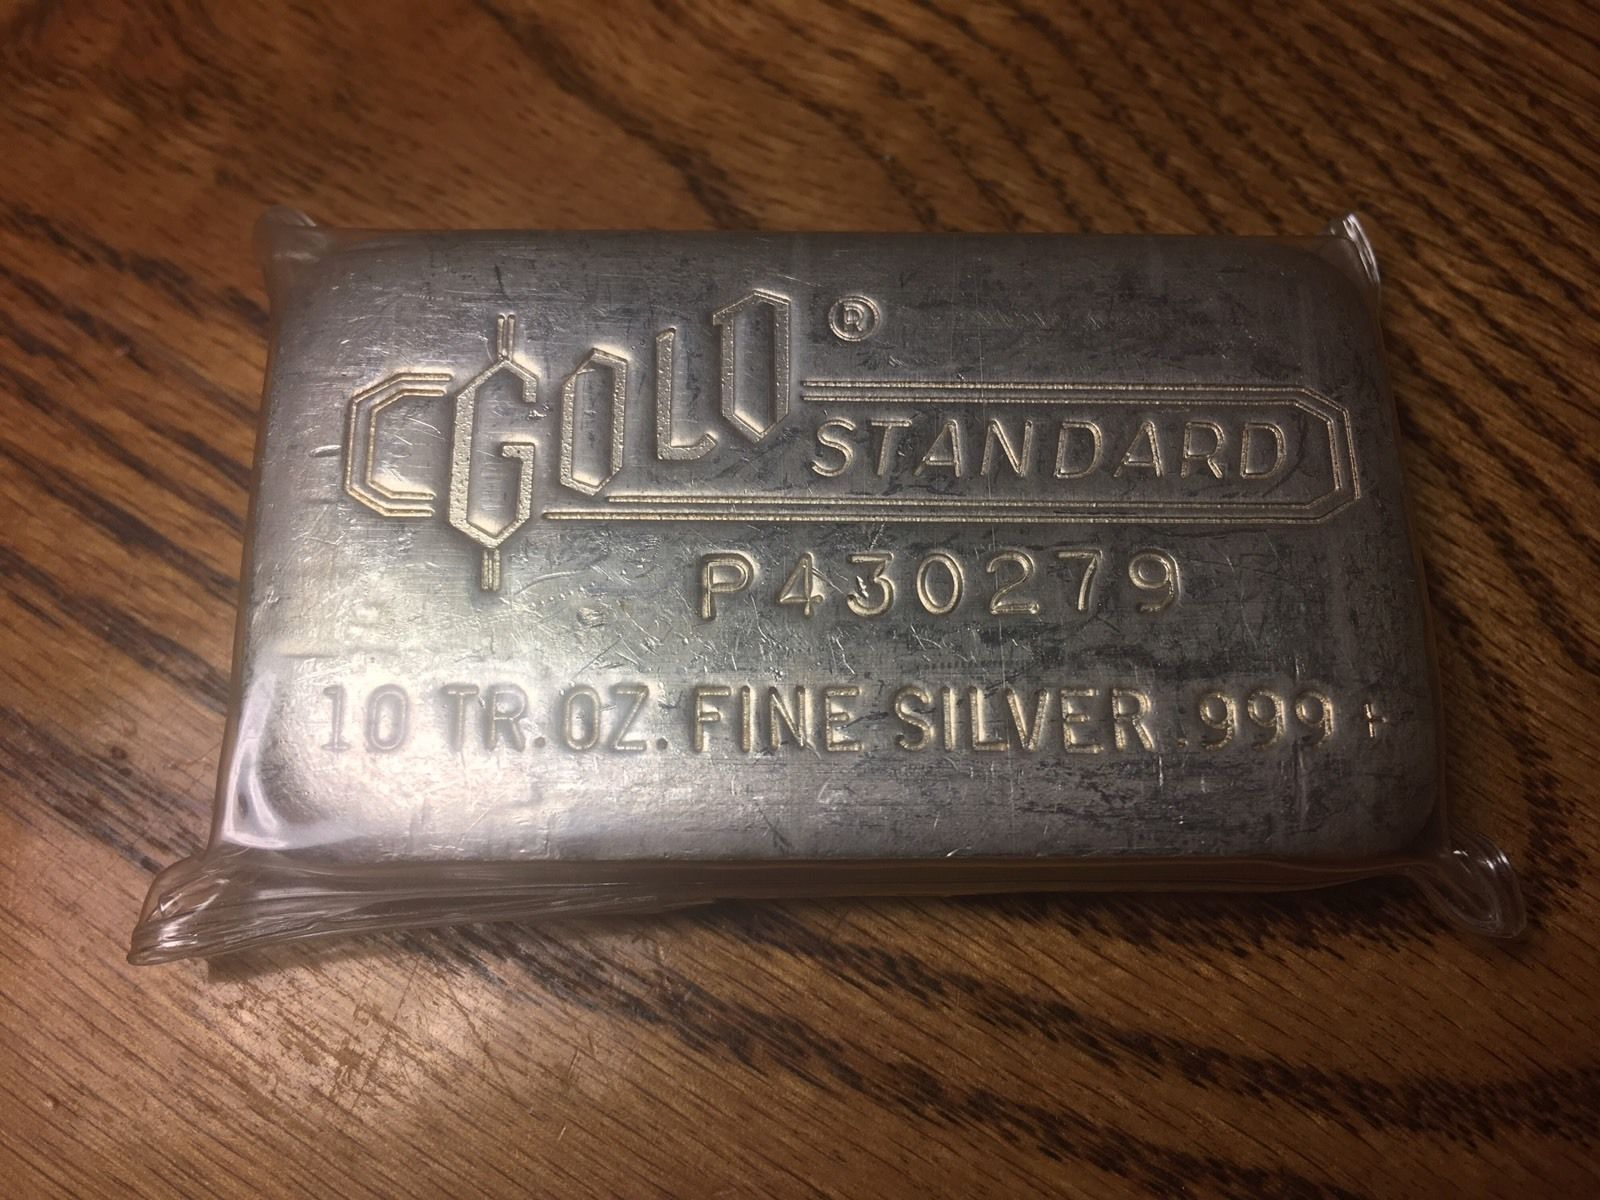 Engelhard 10 Troy Oz 999 Silver Poured Bar Gold Standard Seldom Seen For Sale Silver Gold Silver Bars